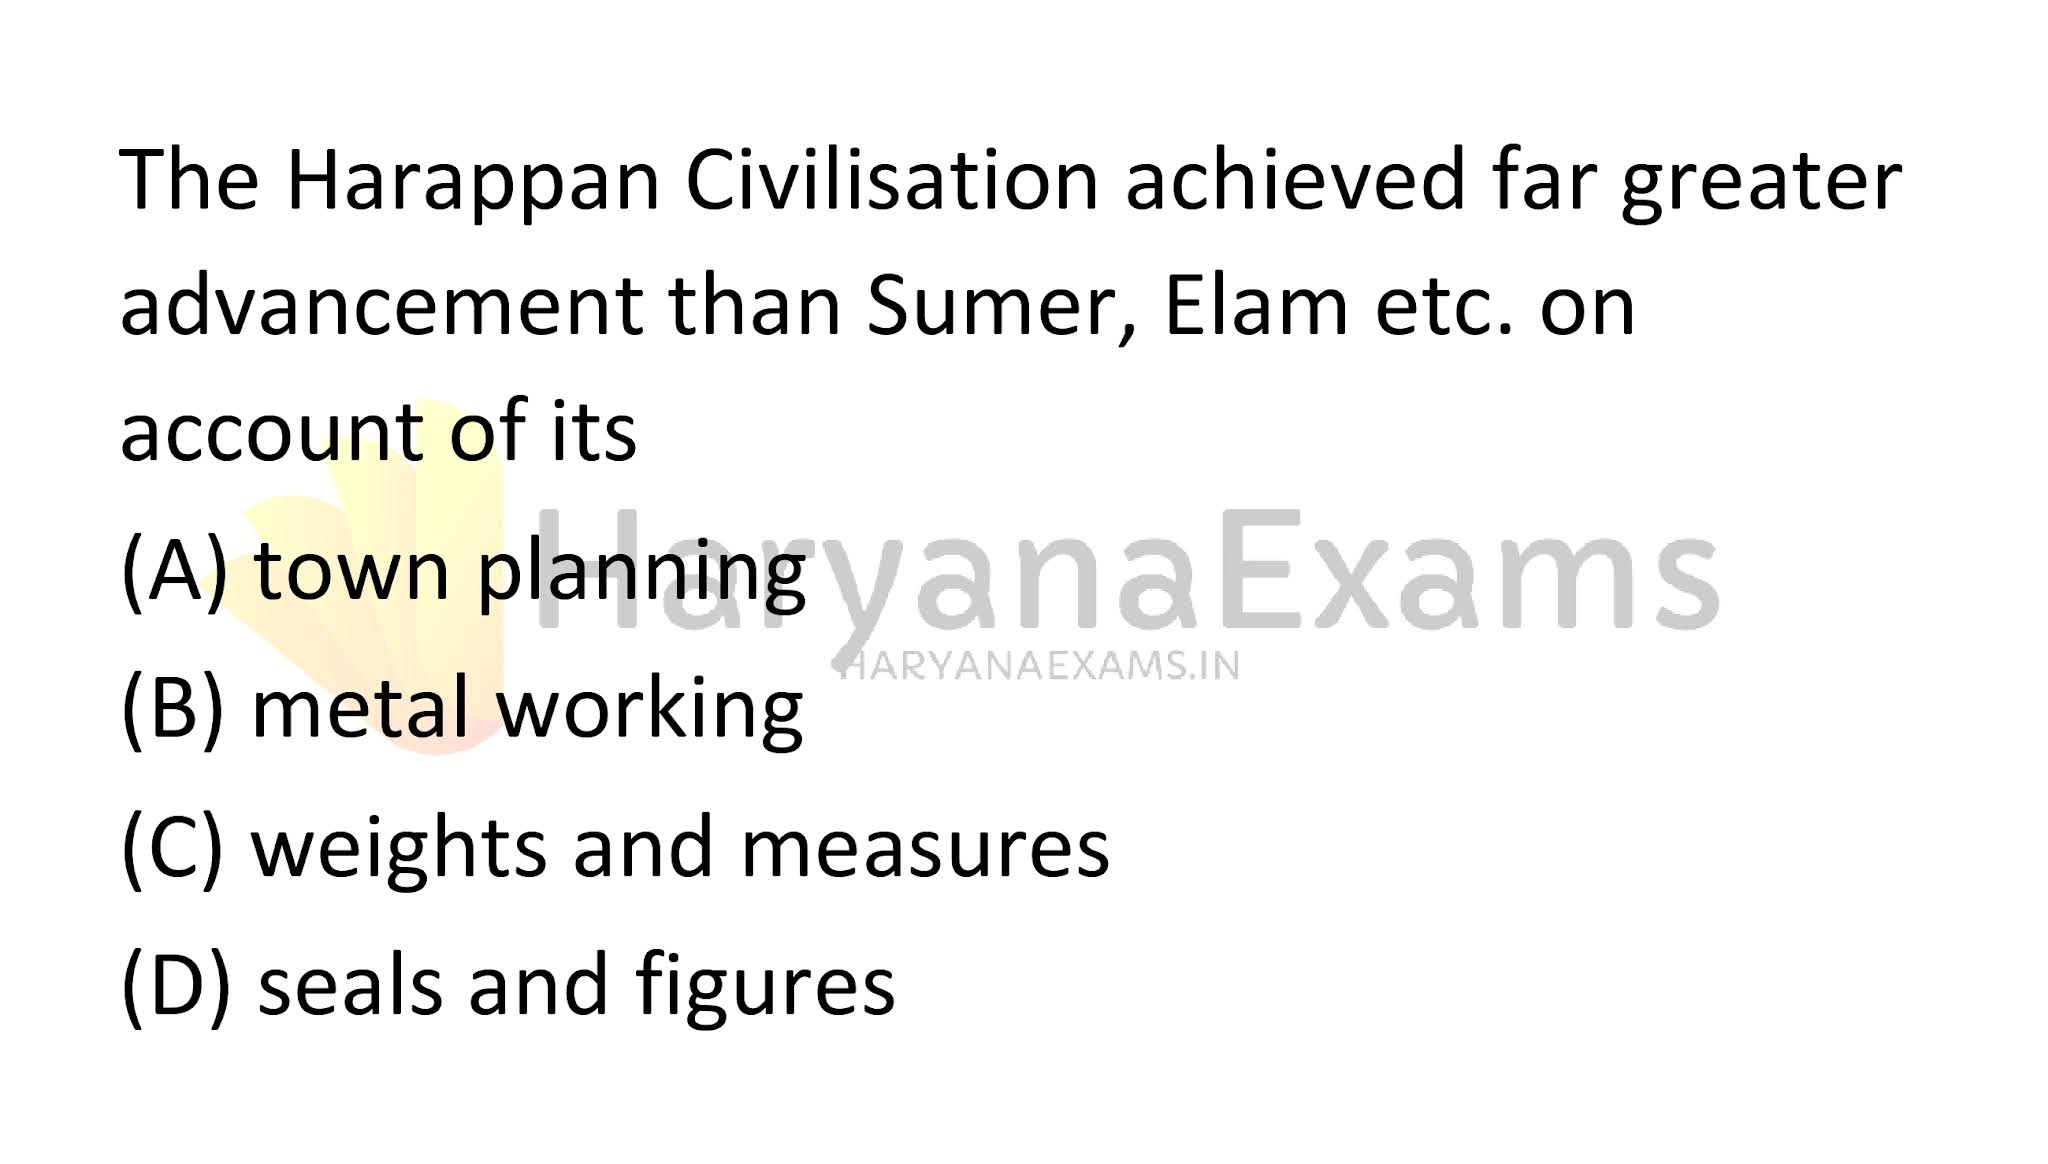 The Harappan Civilisation achieved far greater advancement than Sumer, Elam etc. on account of its